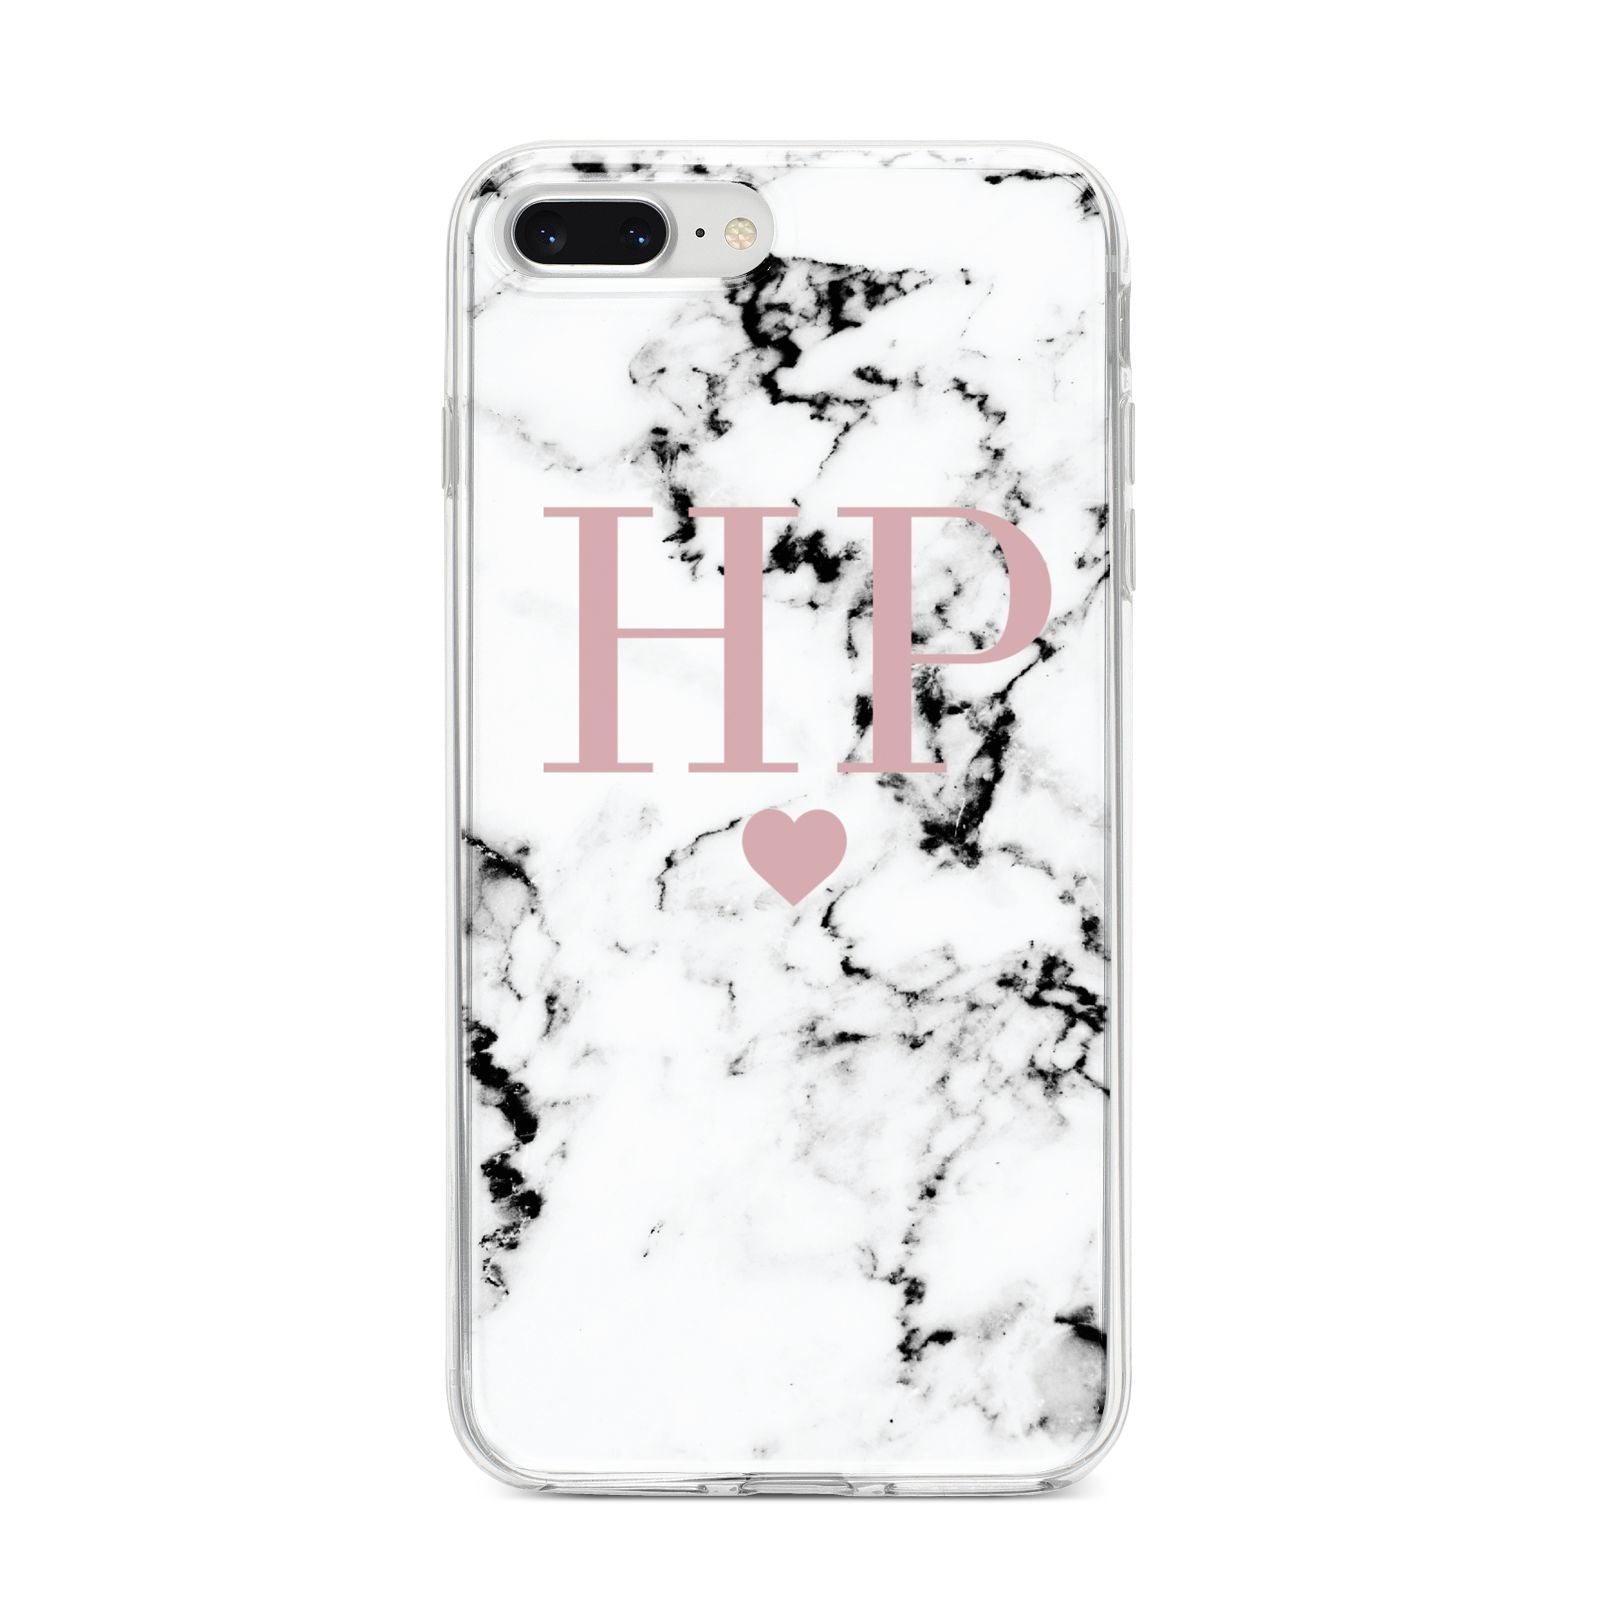 Marble Blush Pink Heart Personalised iPhone 8 Plus Bumper Case on Silver iPhone